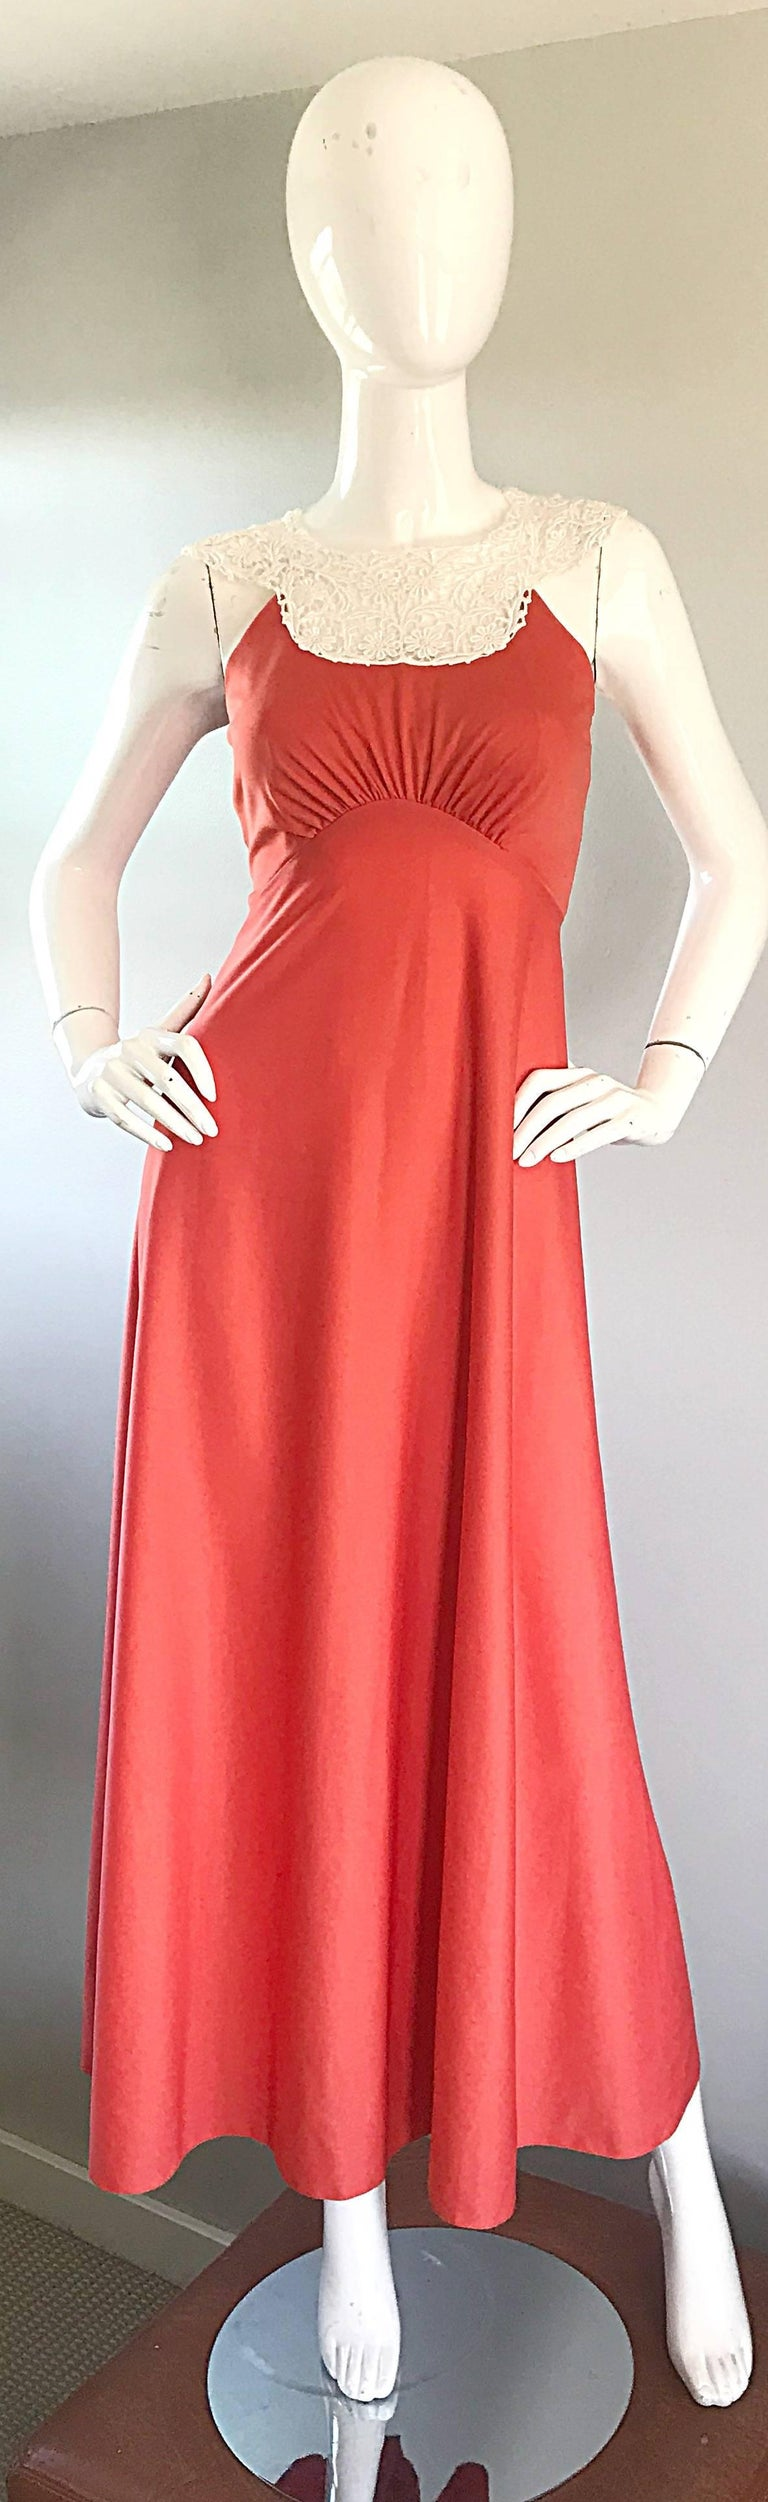 1970s Coral Salmon Pink Jersey + Crochet Lace Collar 70s Vintage Maxi Dress In Excellent Condition For Sale In Chicago, IL